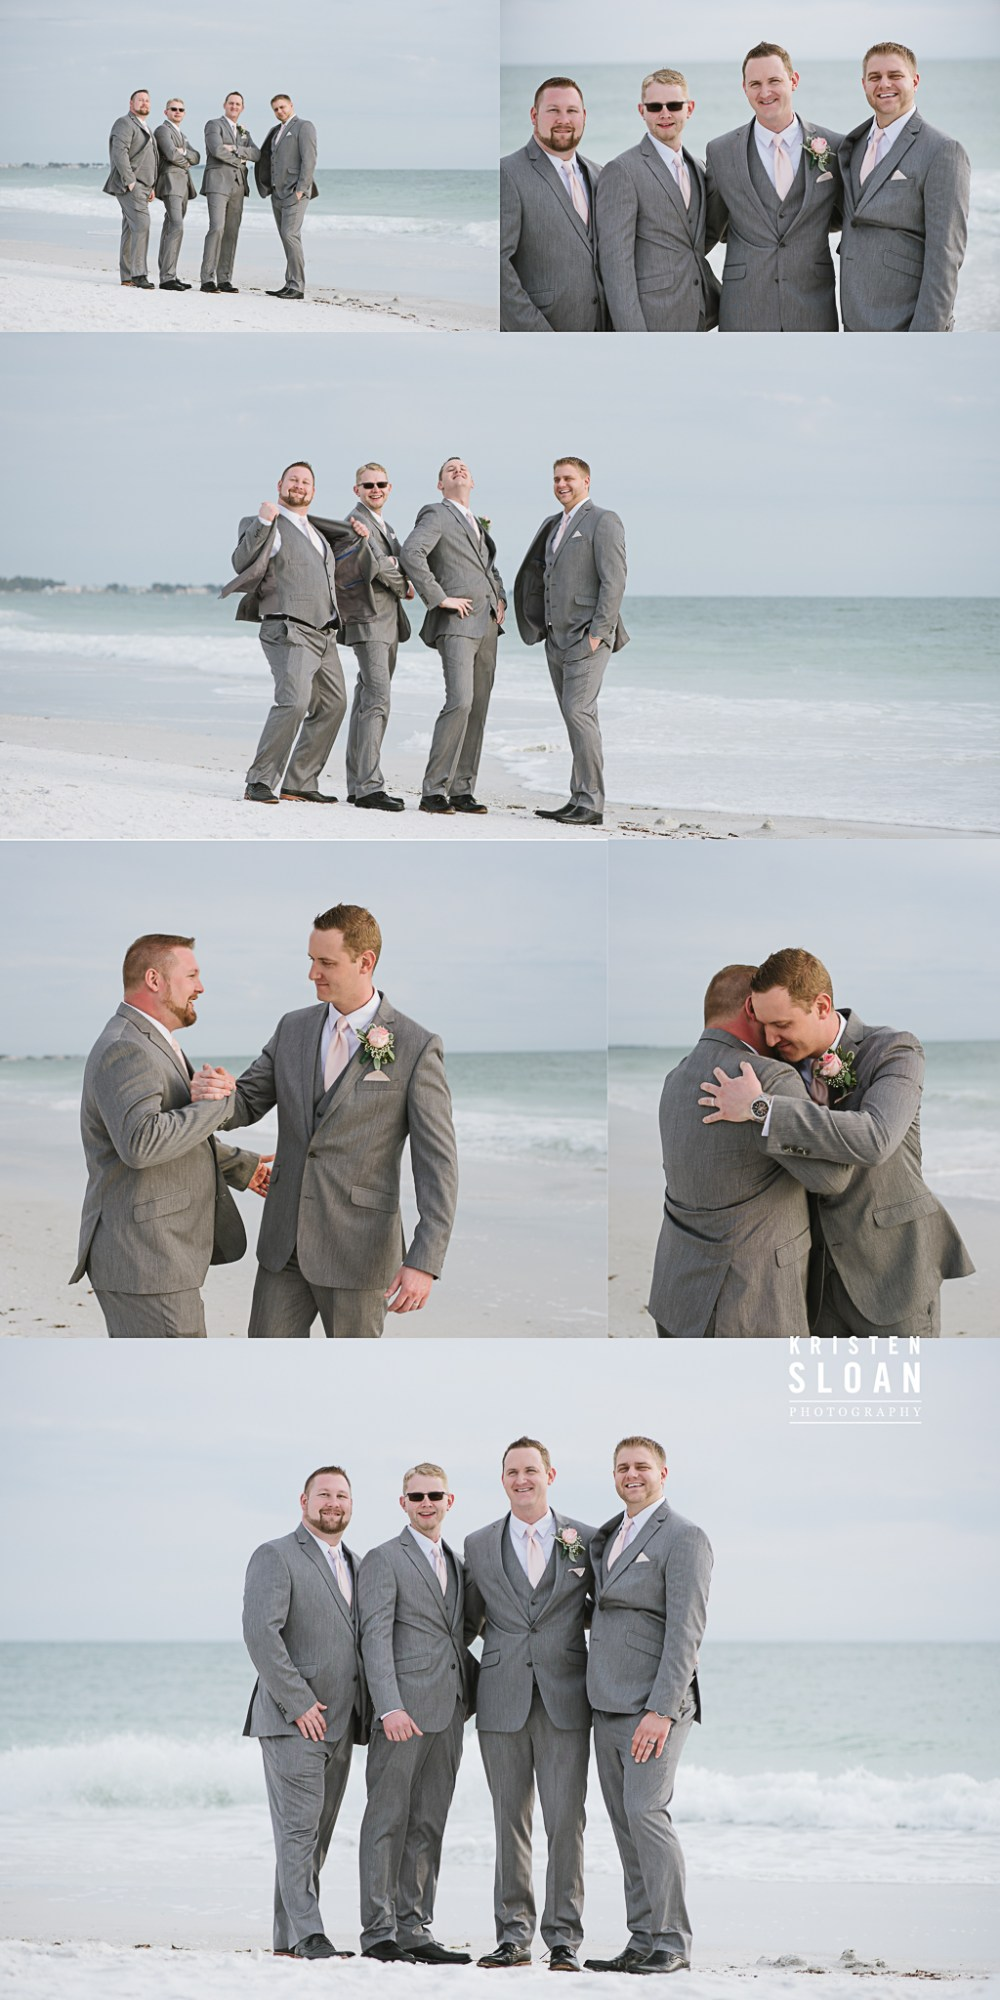 Anna Maria Island Florida Beach Wedding Photographer Kristen Sloan, Sandbar Restaurant Wedding Anna Maria Island, Groomsmen Grey Suits Beach Wedding